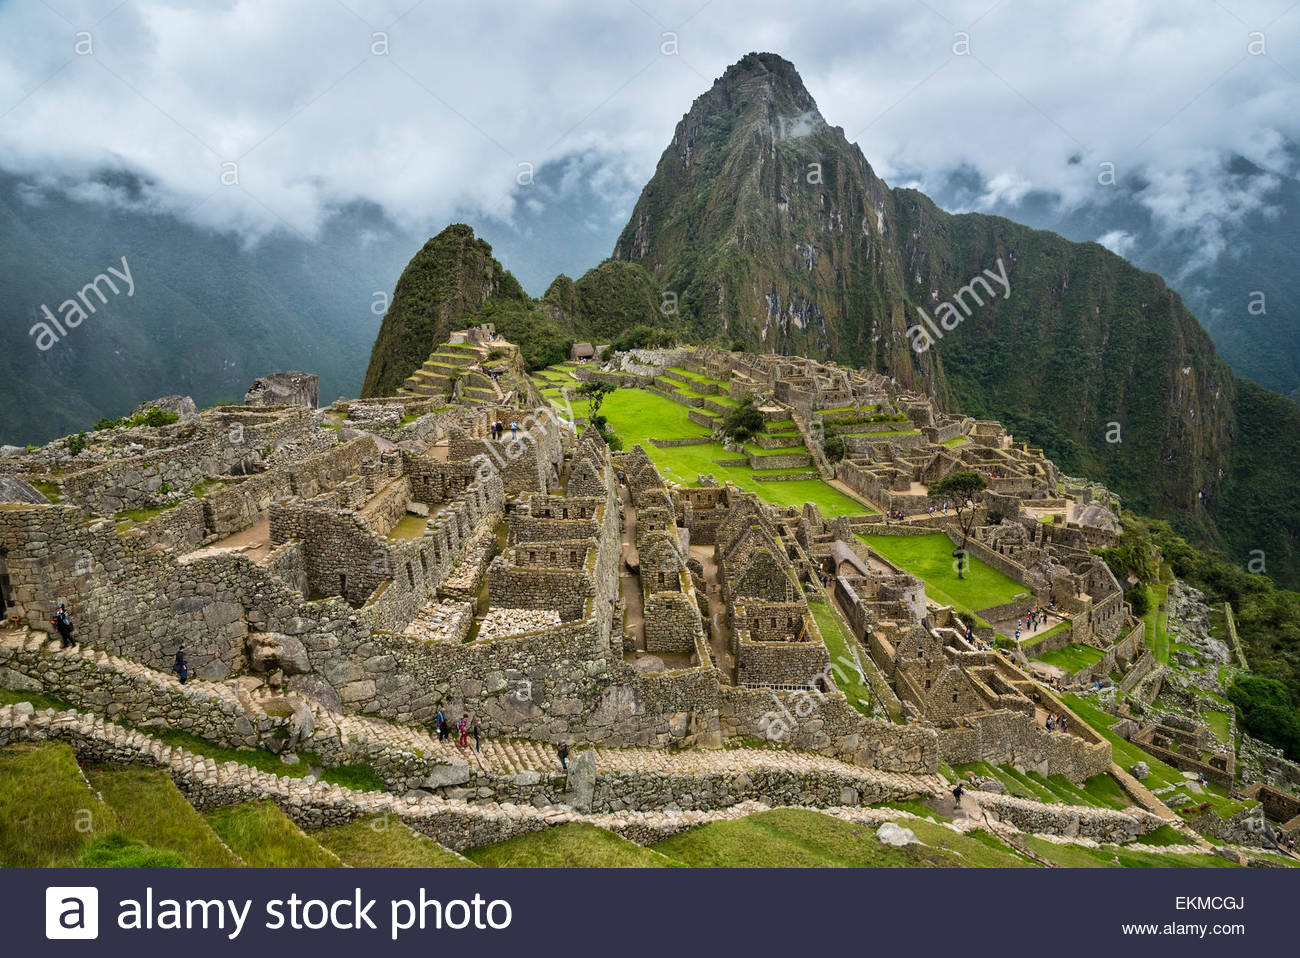 Inca ruins at Machu Picchu, Peru. Stock Photo